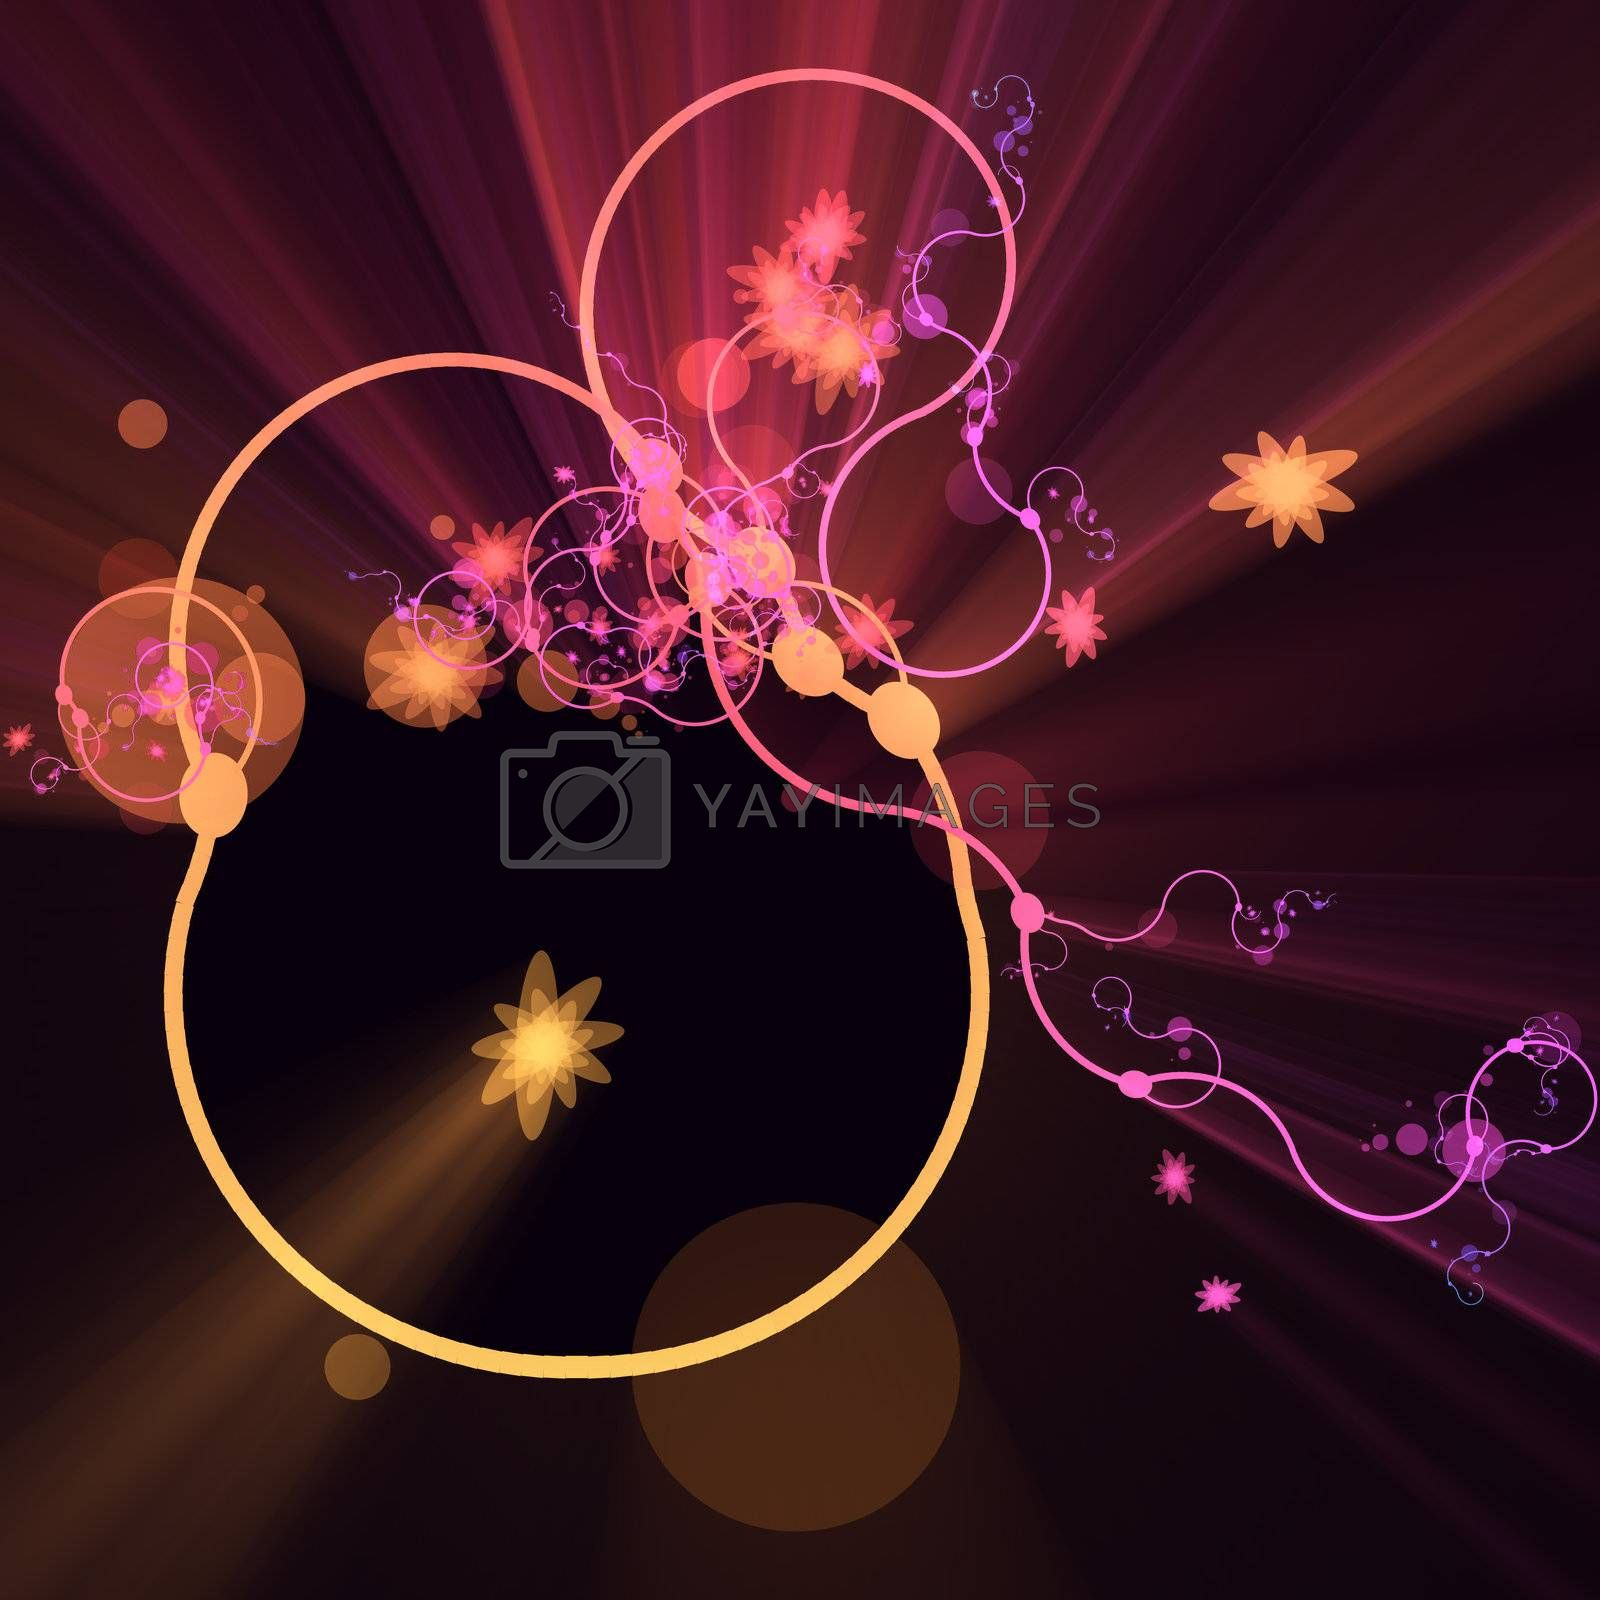 Floral grunge abstract decorative design pattern abstract illustration glowing light